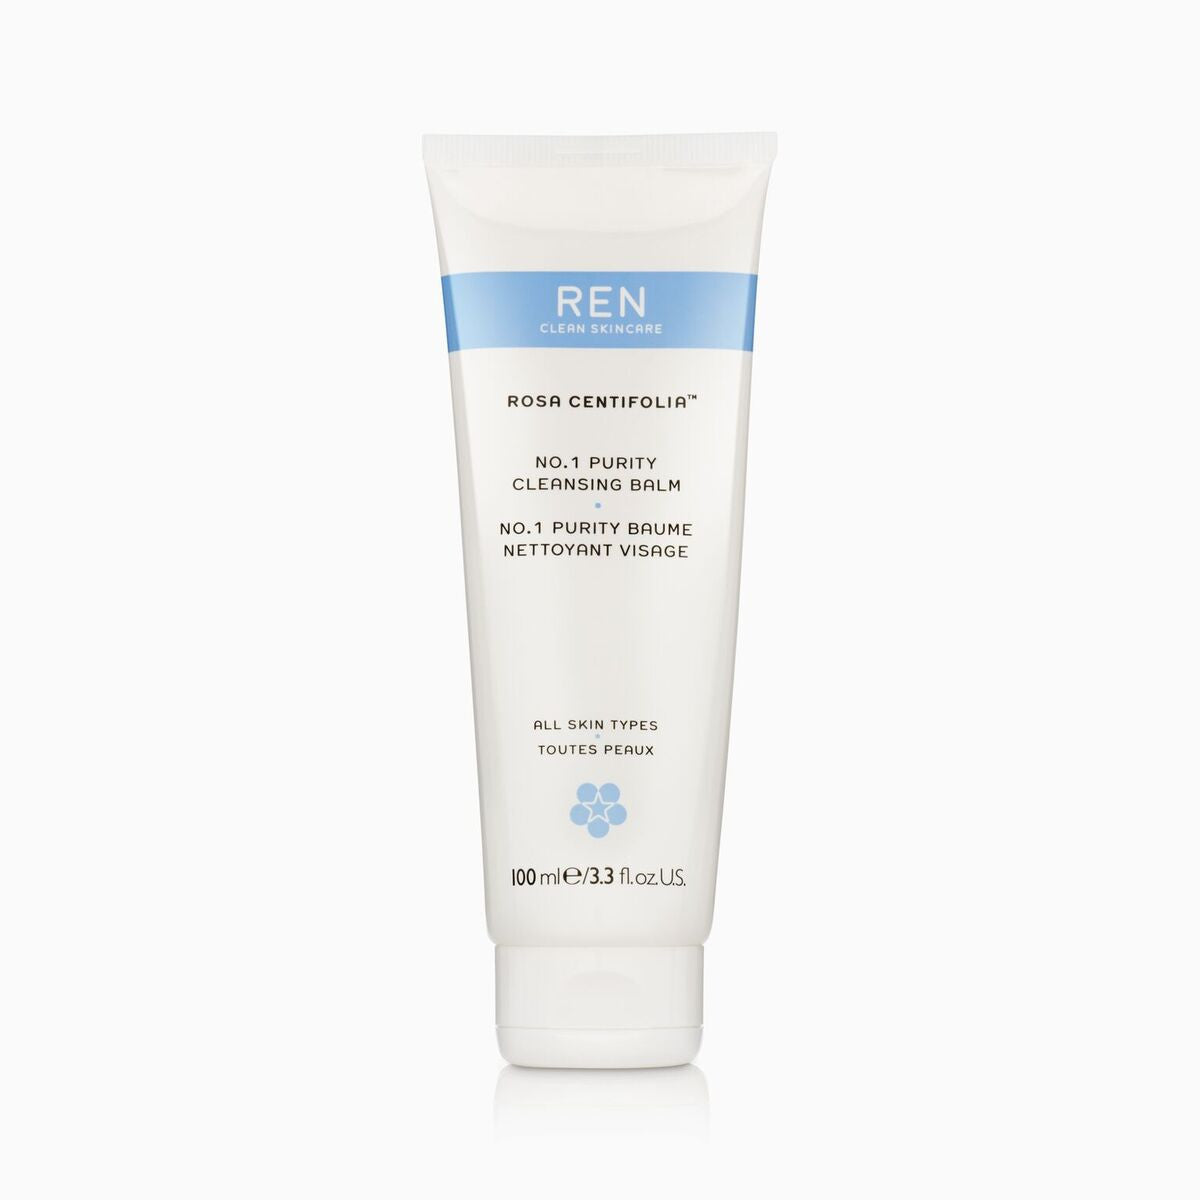 ren - purity cleansing balm